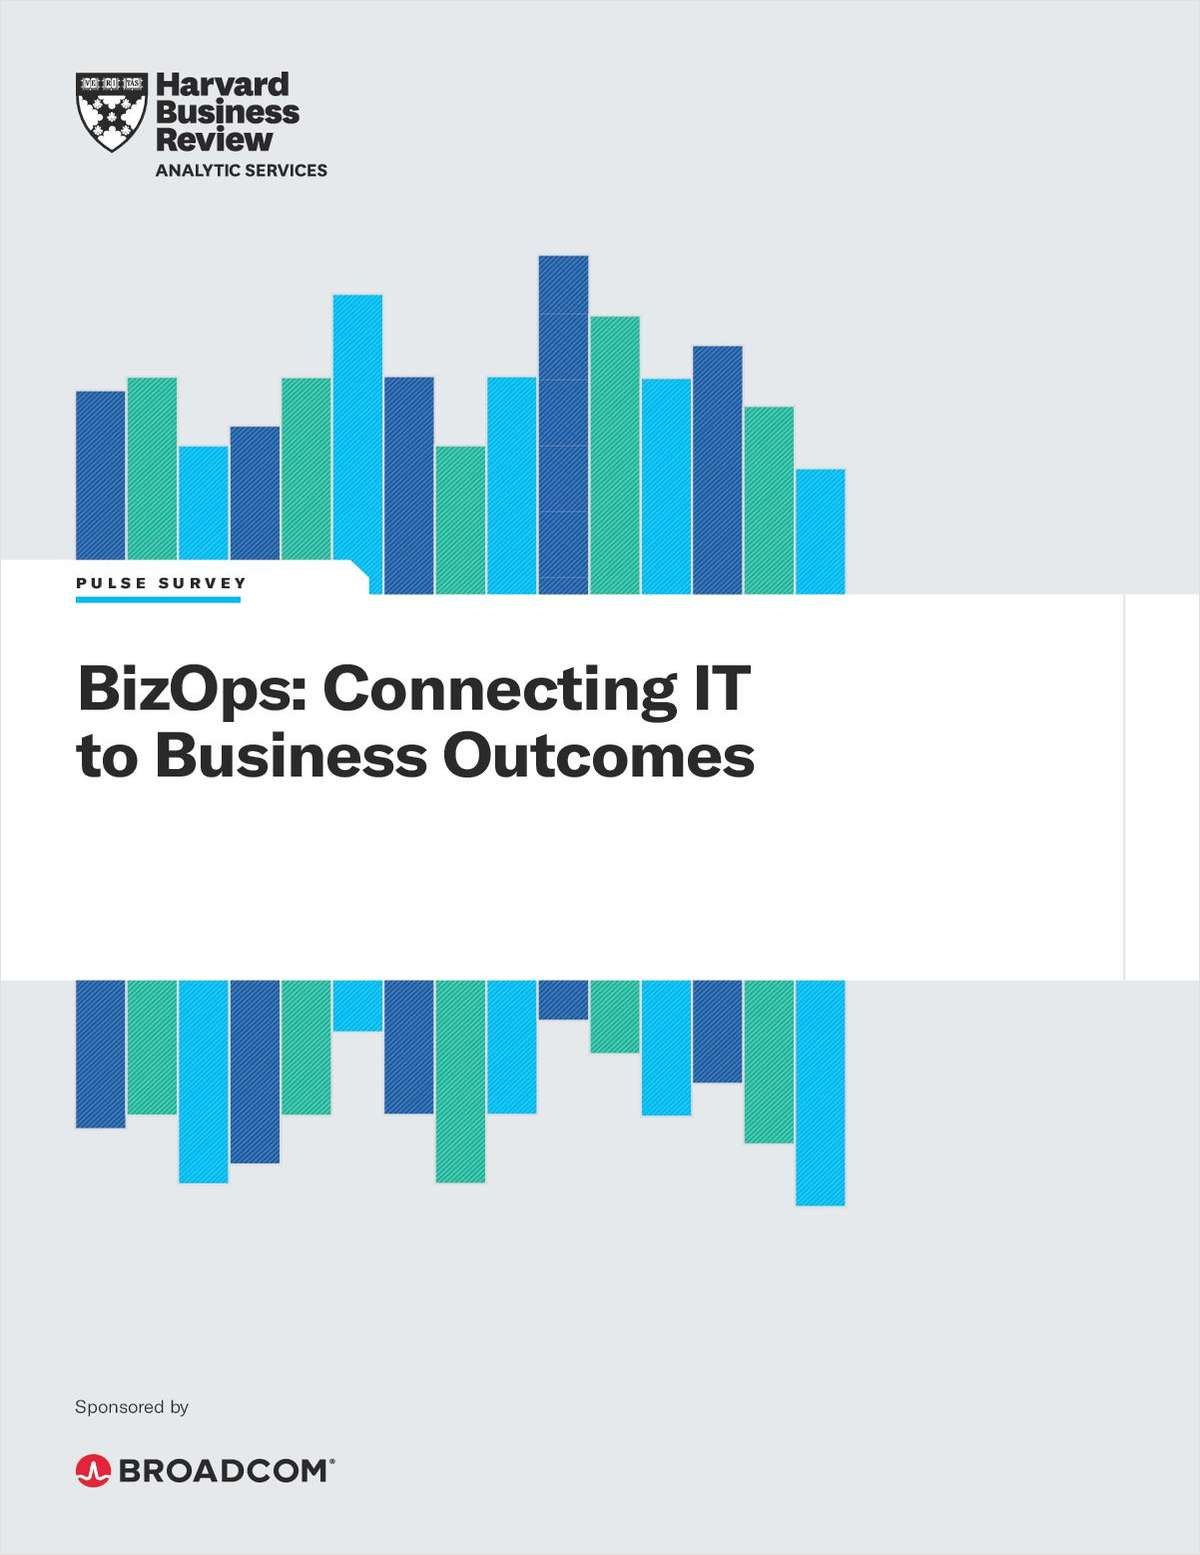 BizOps: Connecting IT to Business Outcomes